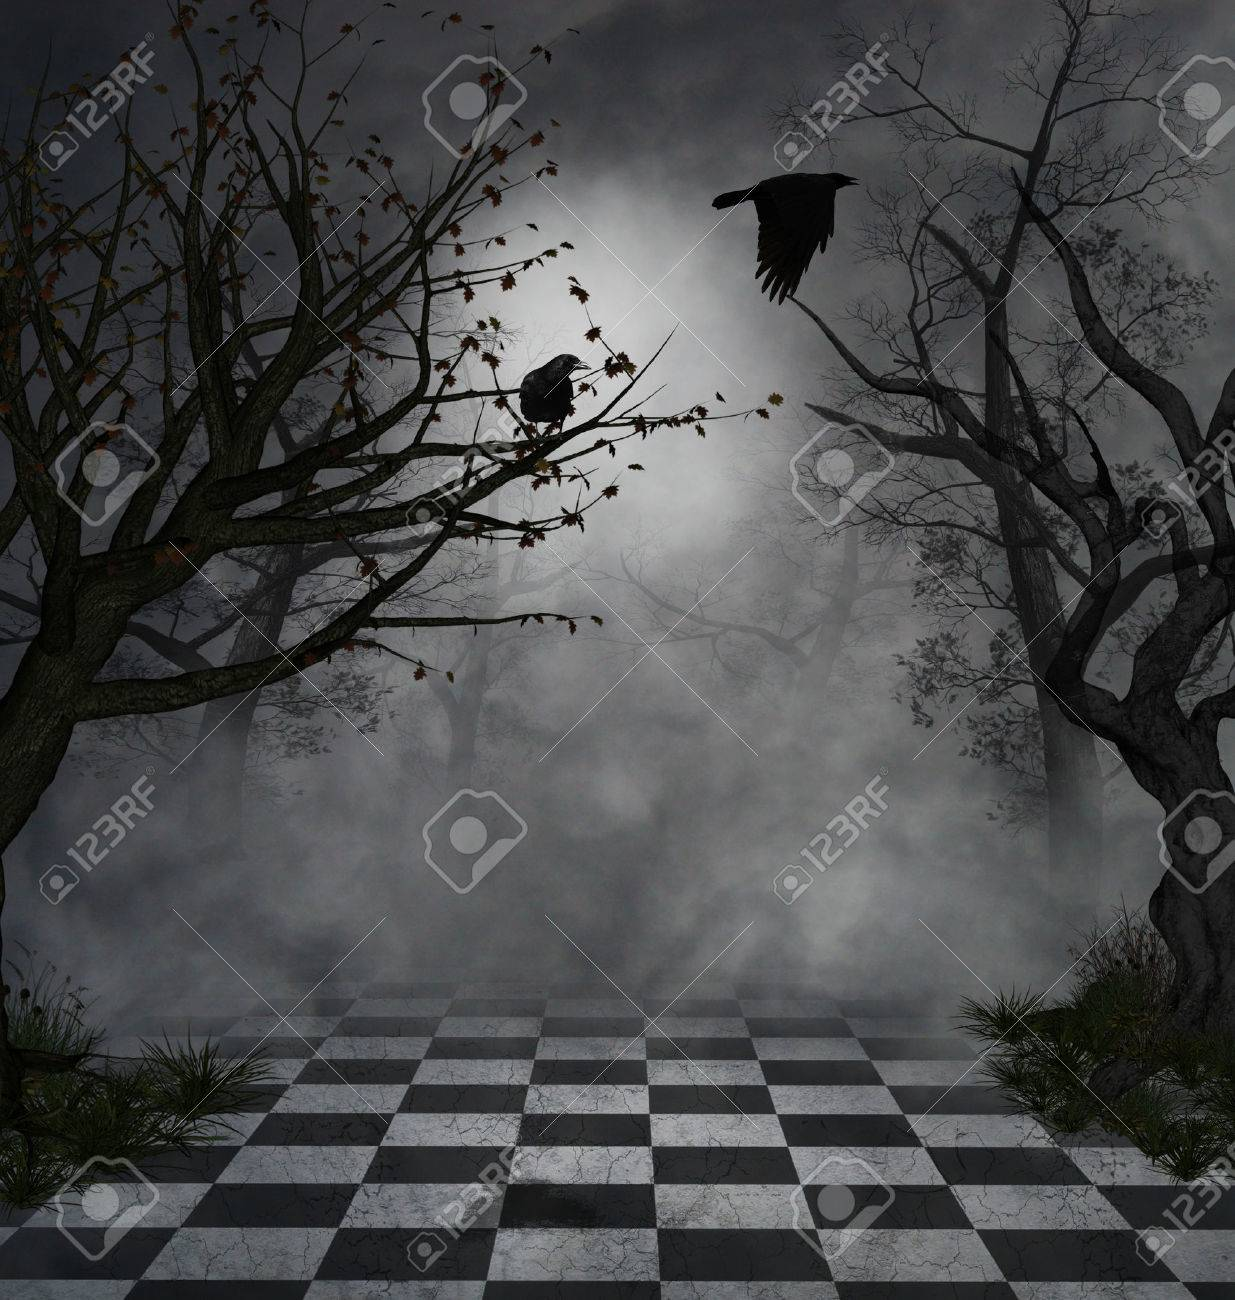 imaginary park with dead trees and crows flying at night - 27995348